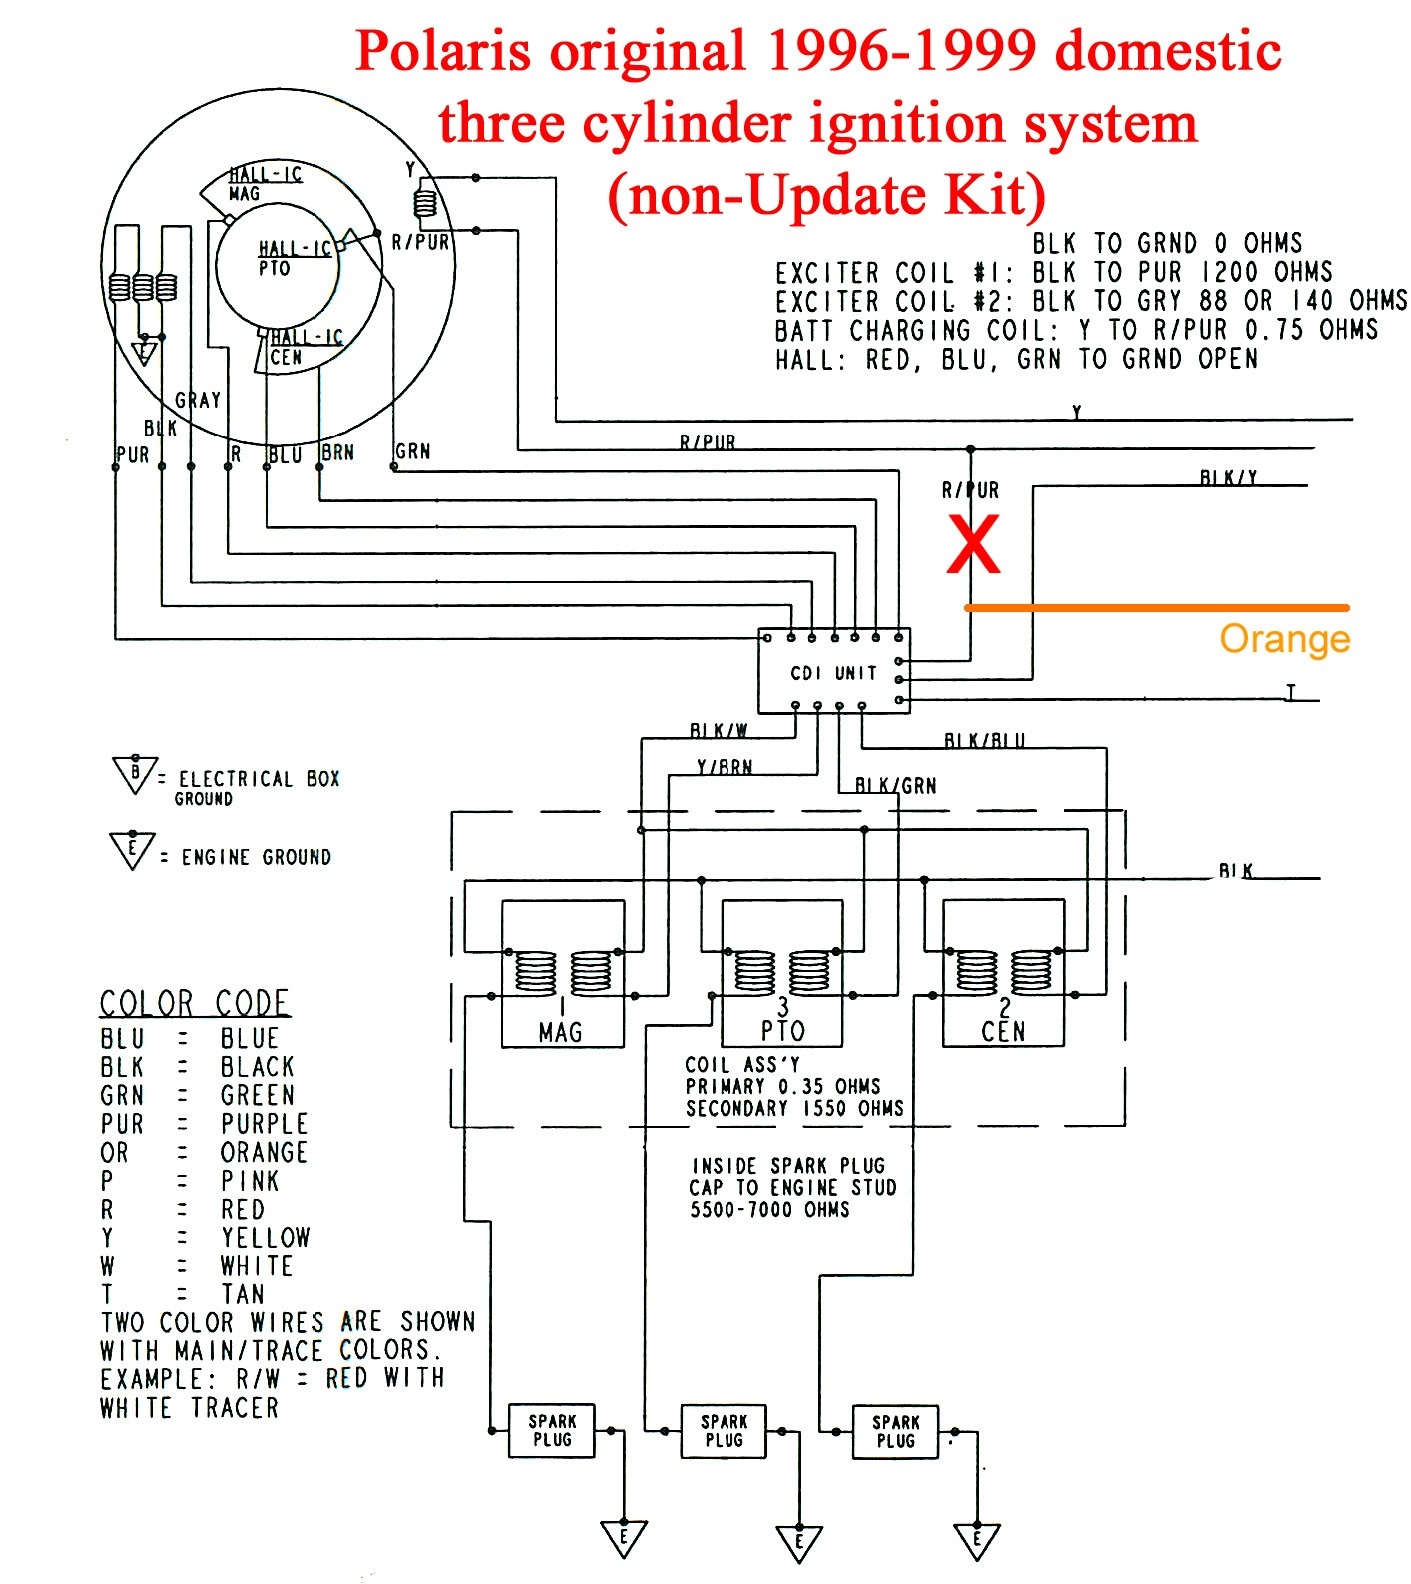 Ignition Interlock Wiring Diagram - Wiring Diagram Universal Motor Best Ignition Interlock Wiring Diagram Luxury Ignition Switch Wiring 6d